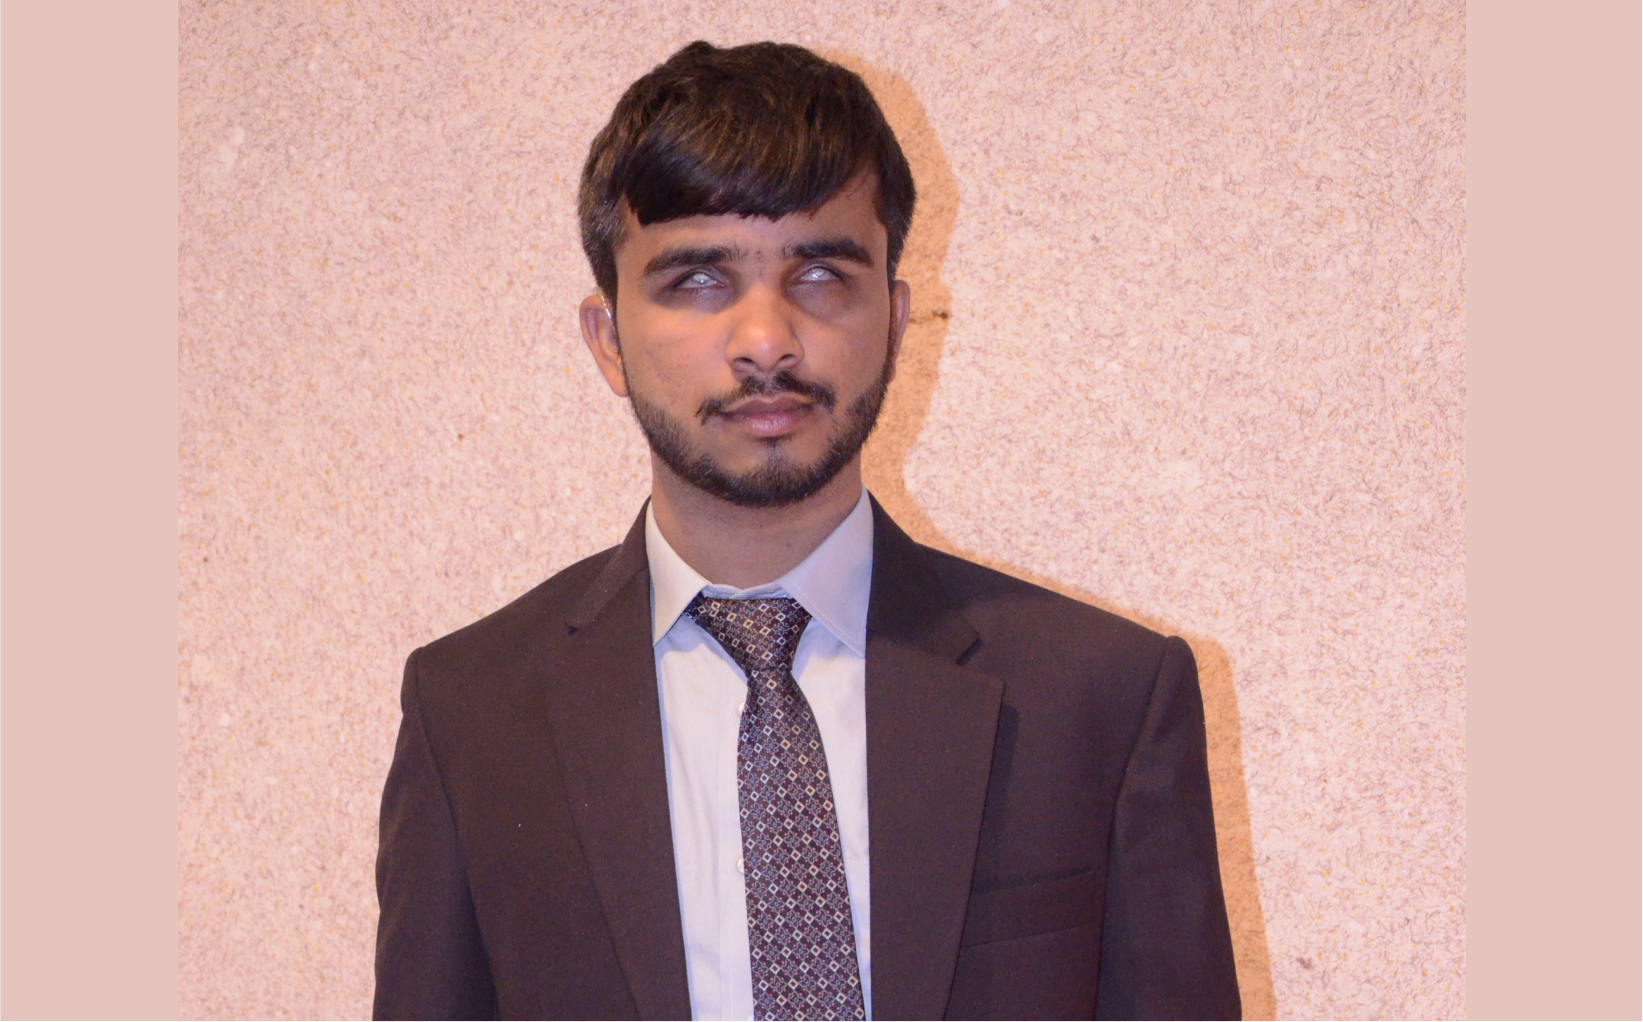 Abdullah posing for the camera wearing a suit and tie.